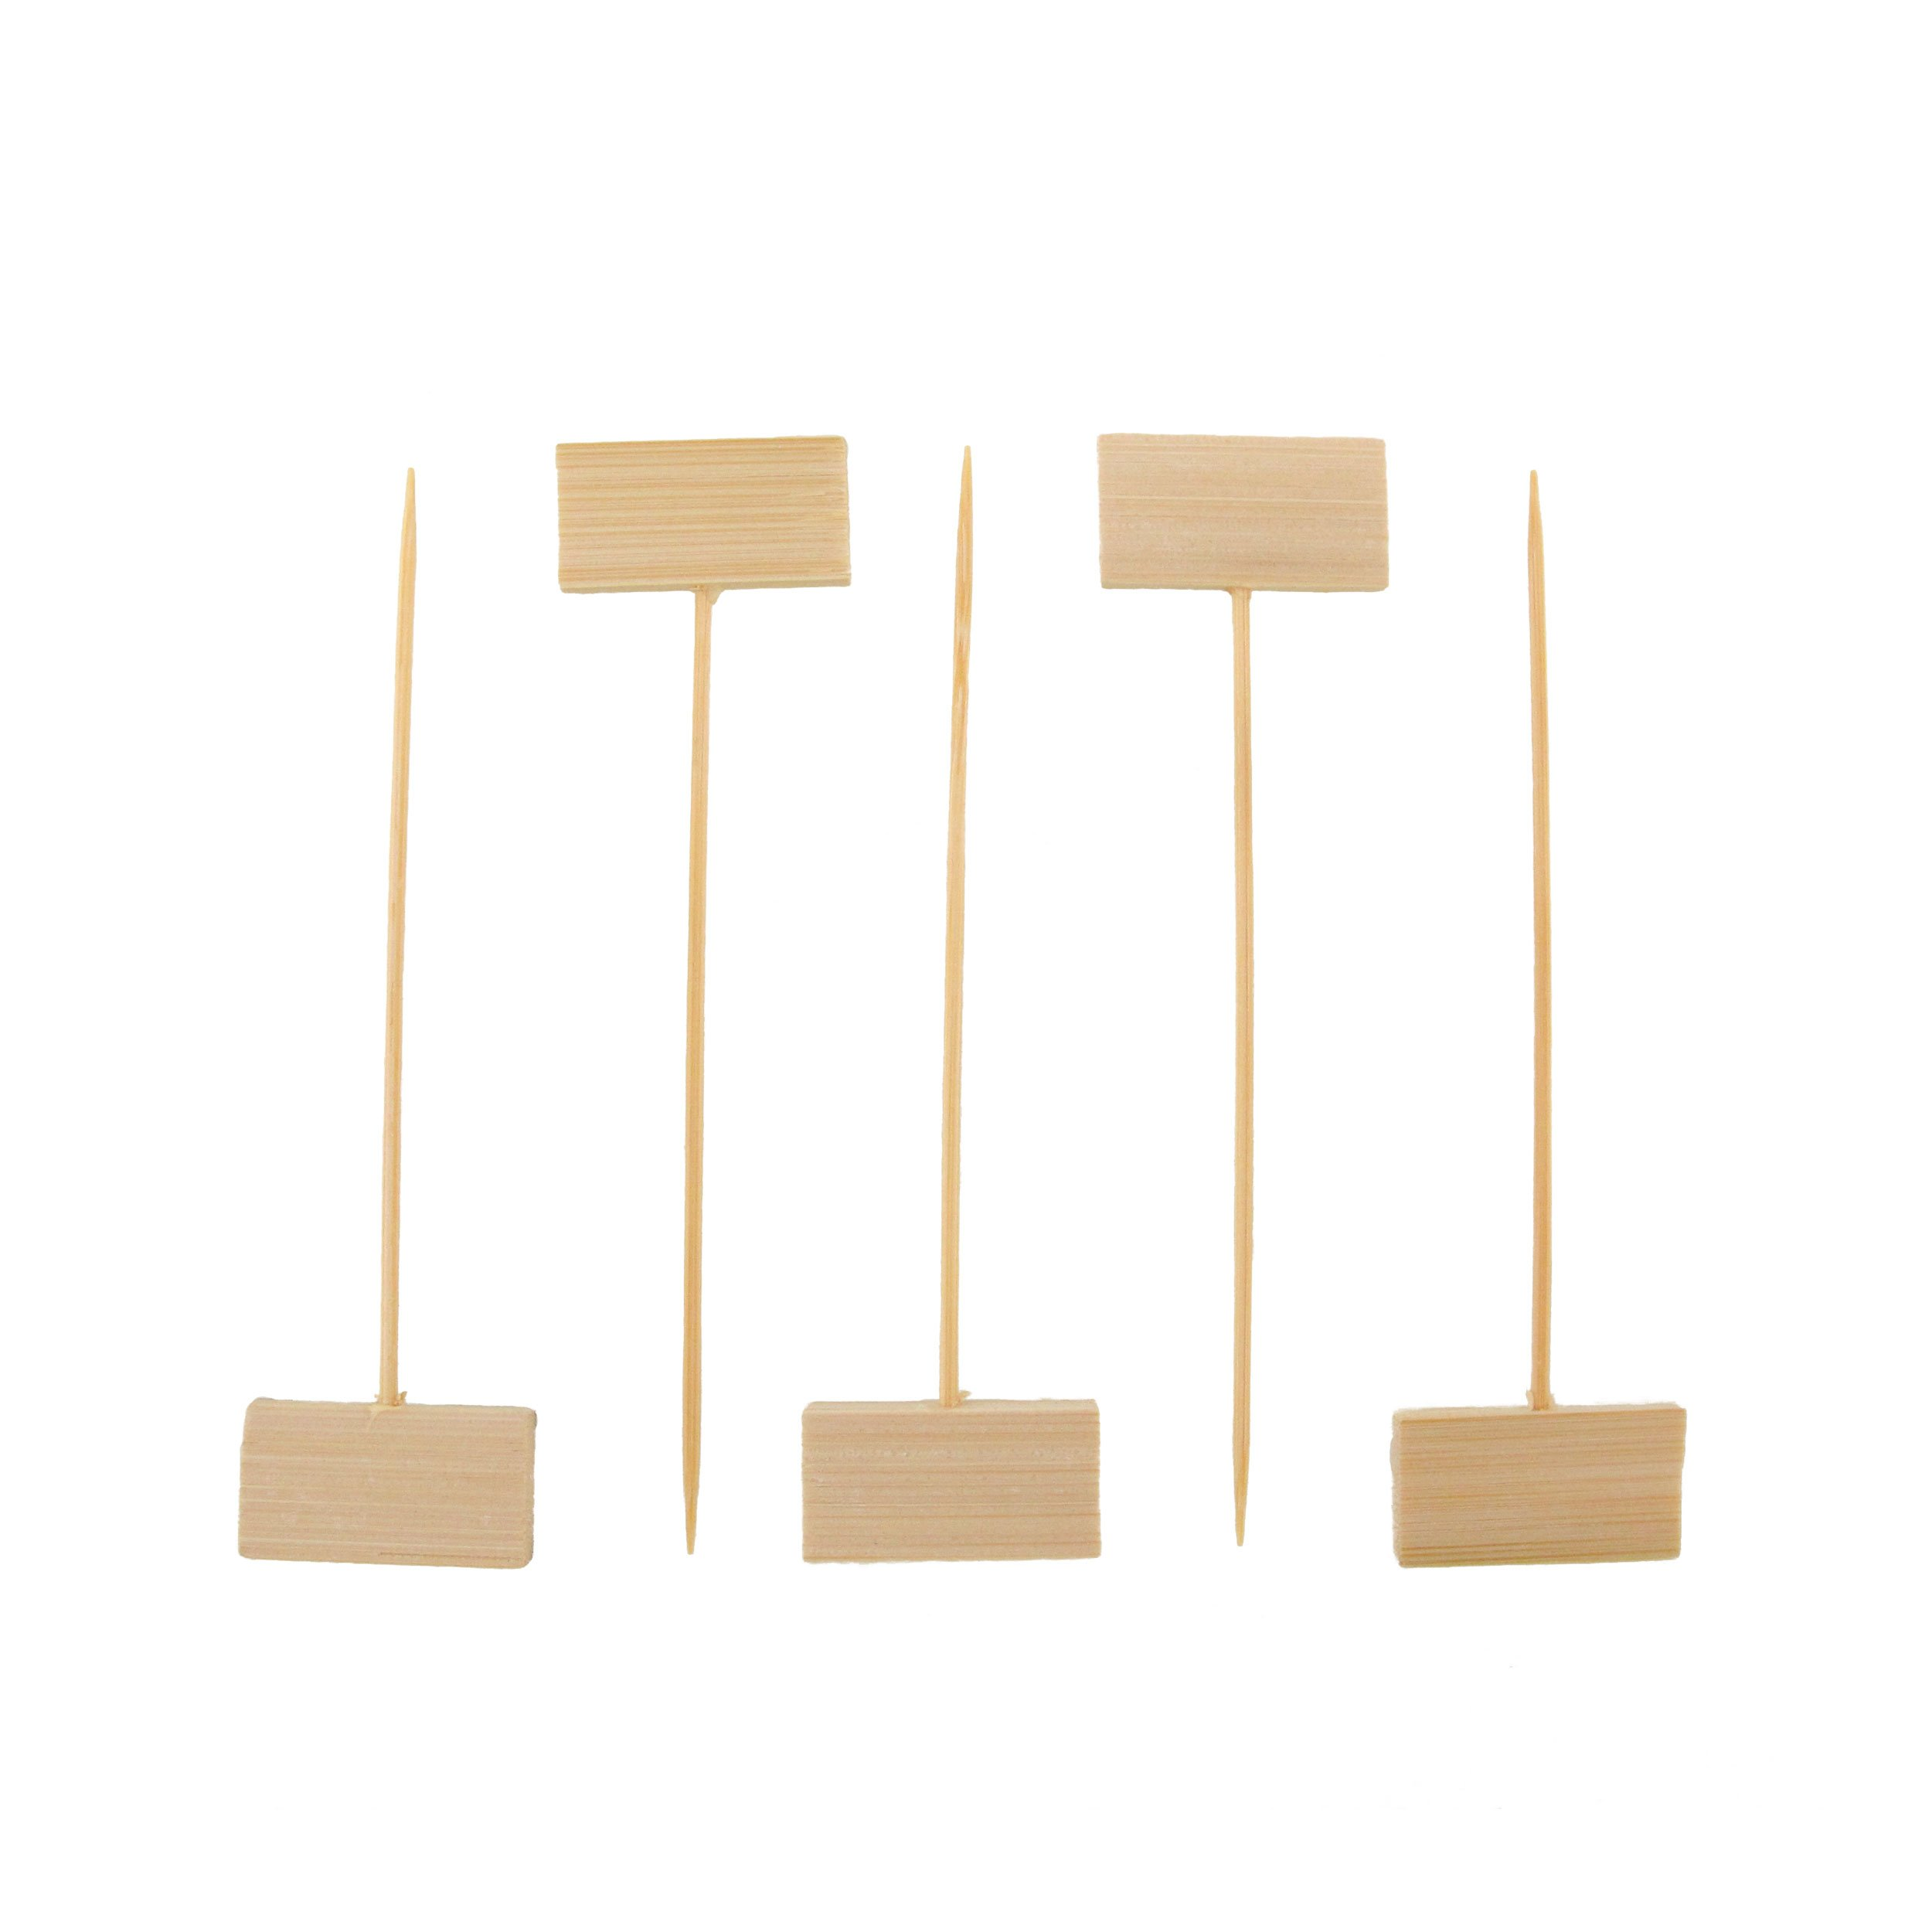 BambooMN 4'' Decorative Bamboo Small Billboard Cocktail Hors' D'oeuvres Pick Skewer for Events, Restaurants, or Home Party Supplies, 300 Pieces